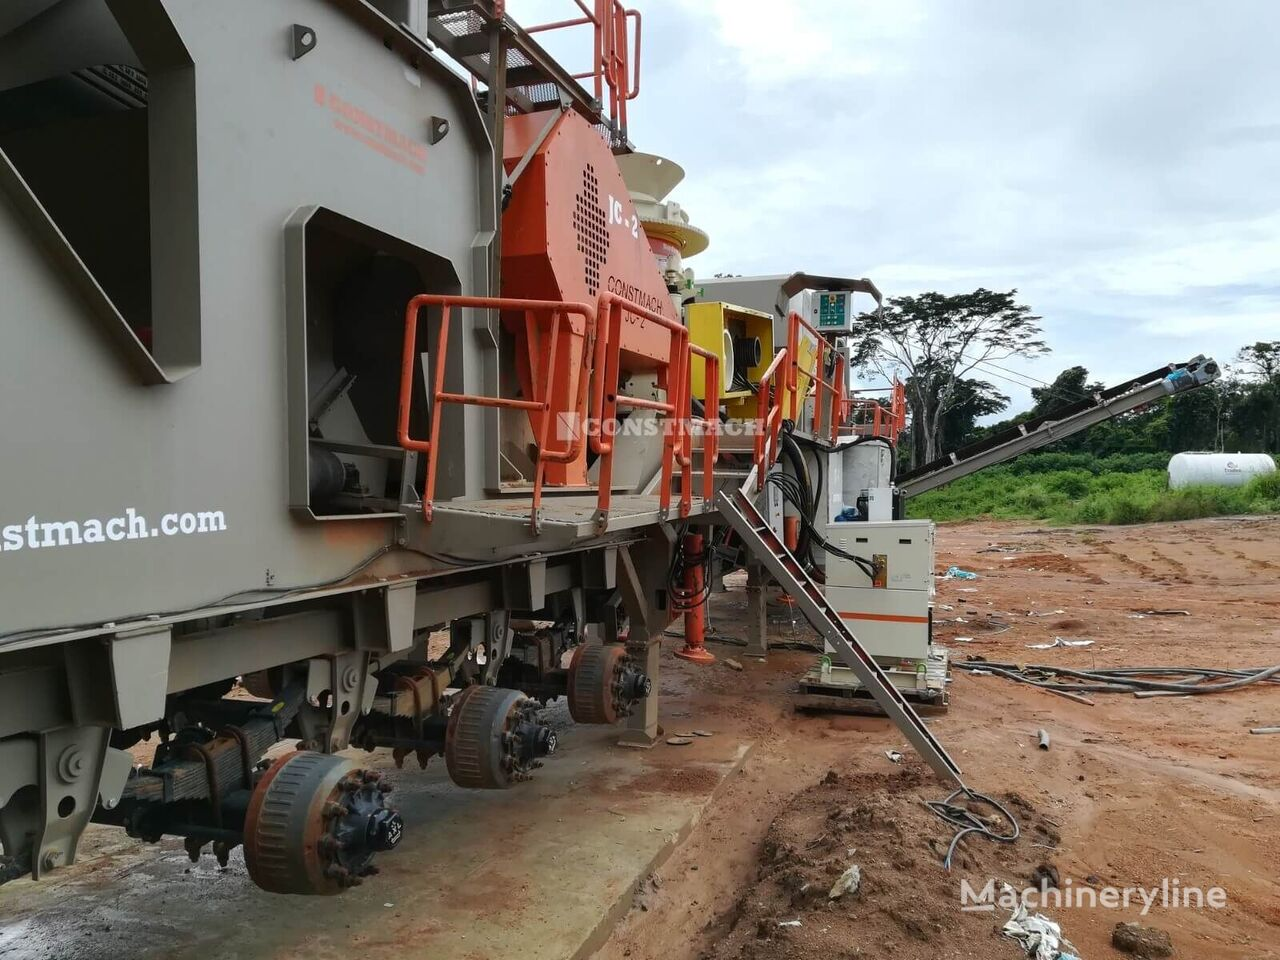 new CONSTMACH 60-80 tph MOBILE JAW + CONE CRUSHER crushing plant